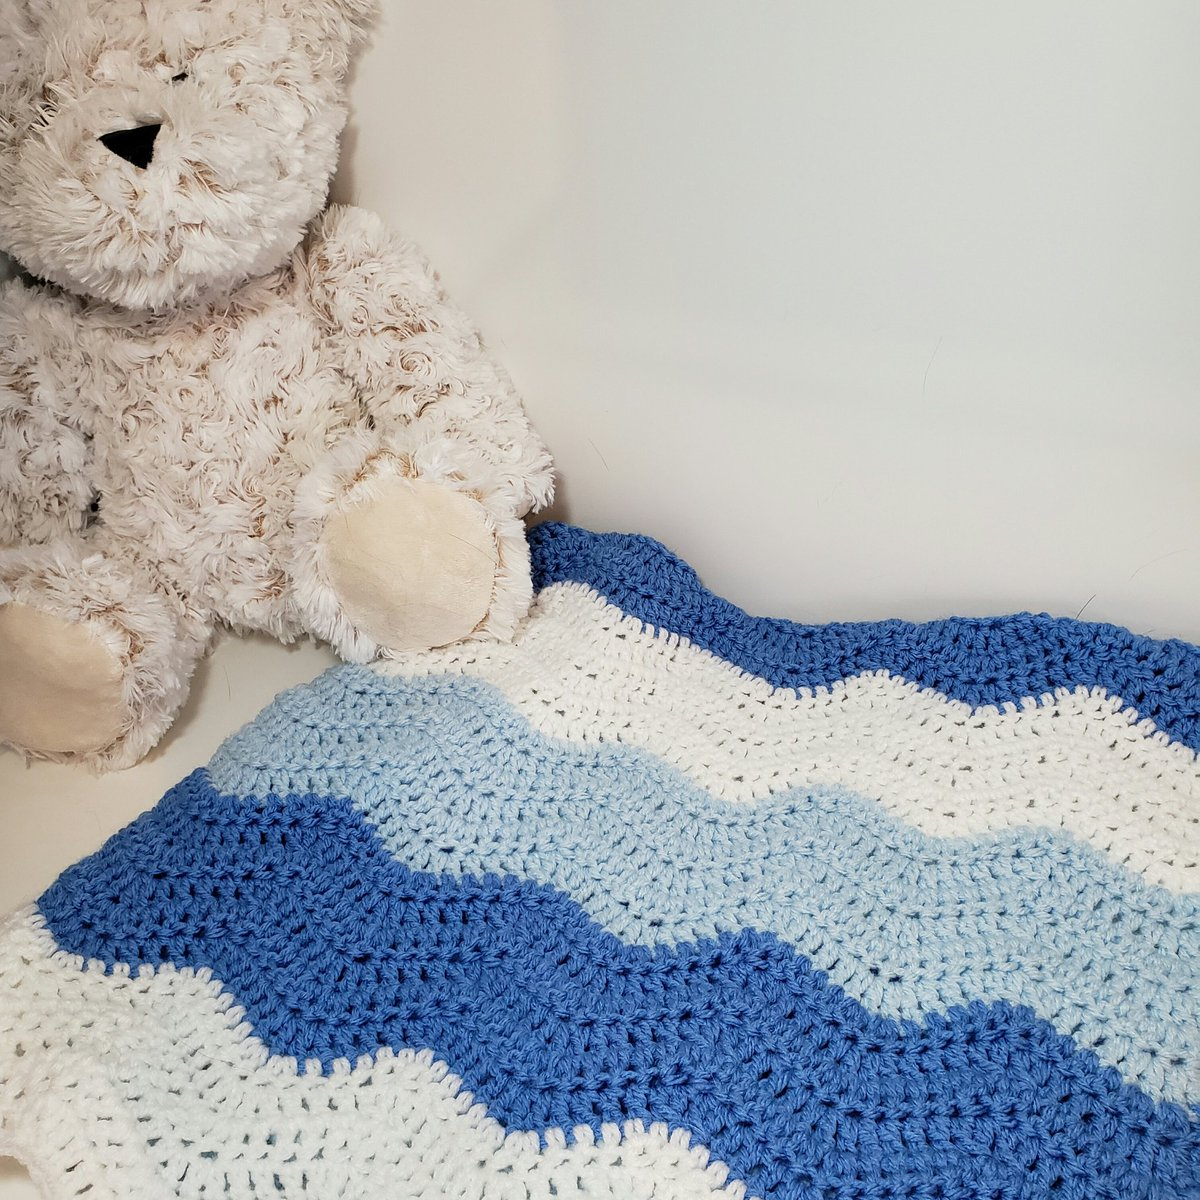 We make some incredible baby blankets!  #pleaseRT  Is there one person that will help us out with a retweet?  @KimKardashian @khloekardashian @KendallJenner @KrisJenner @chrissyteigen @ArianaGrande @justinbieber @JLo @italiaricci